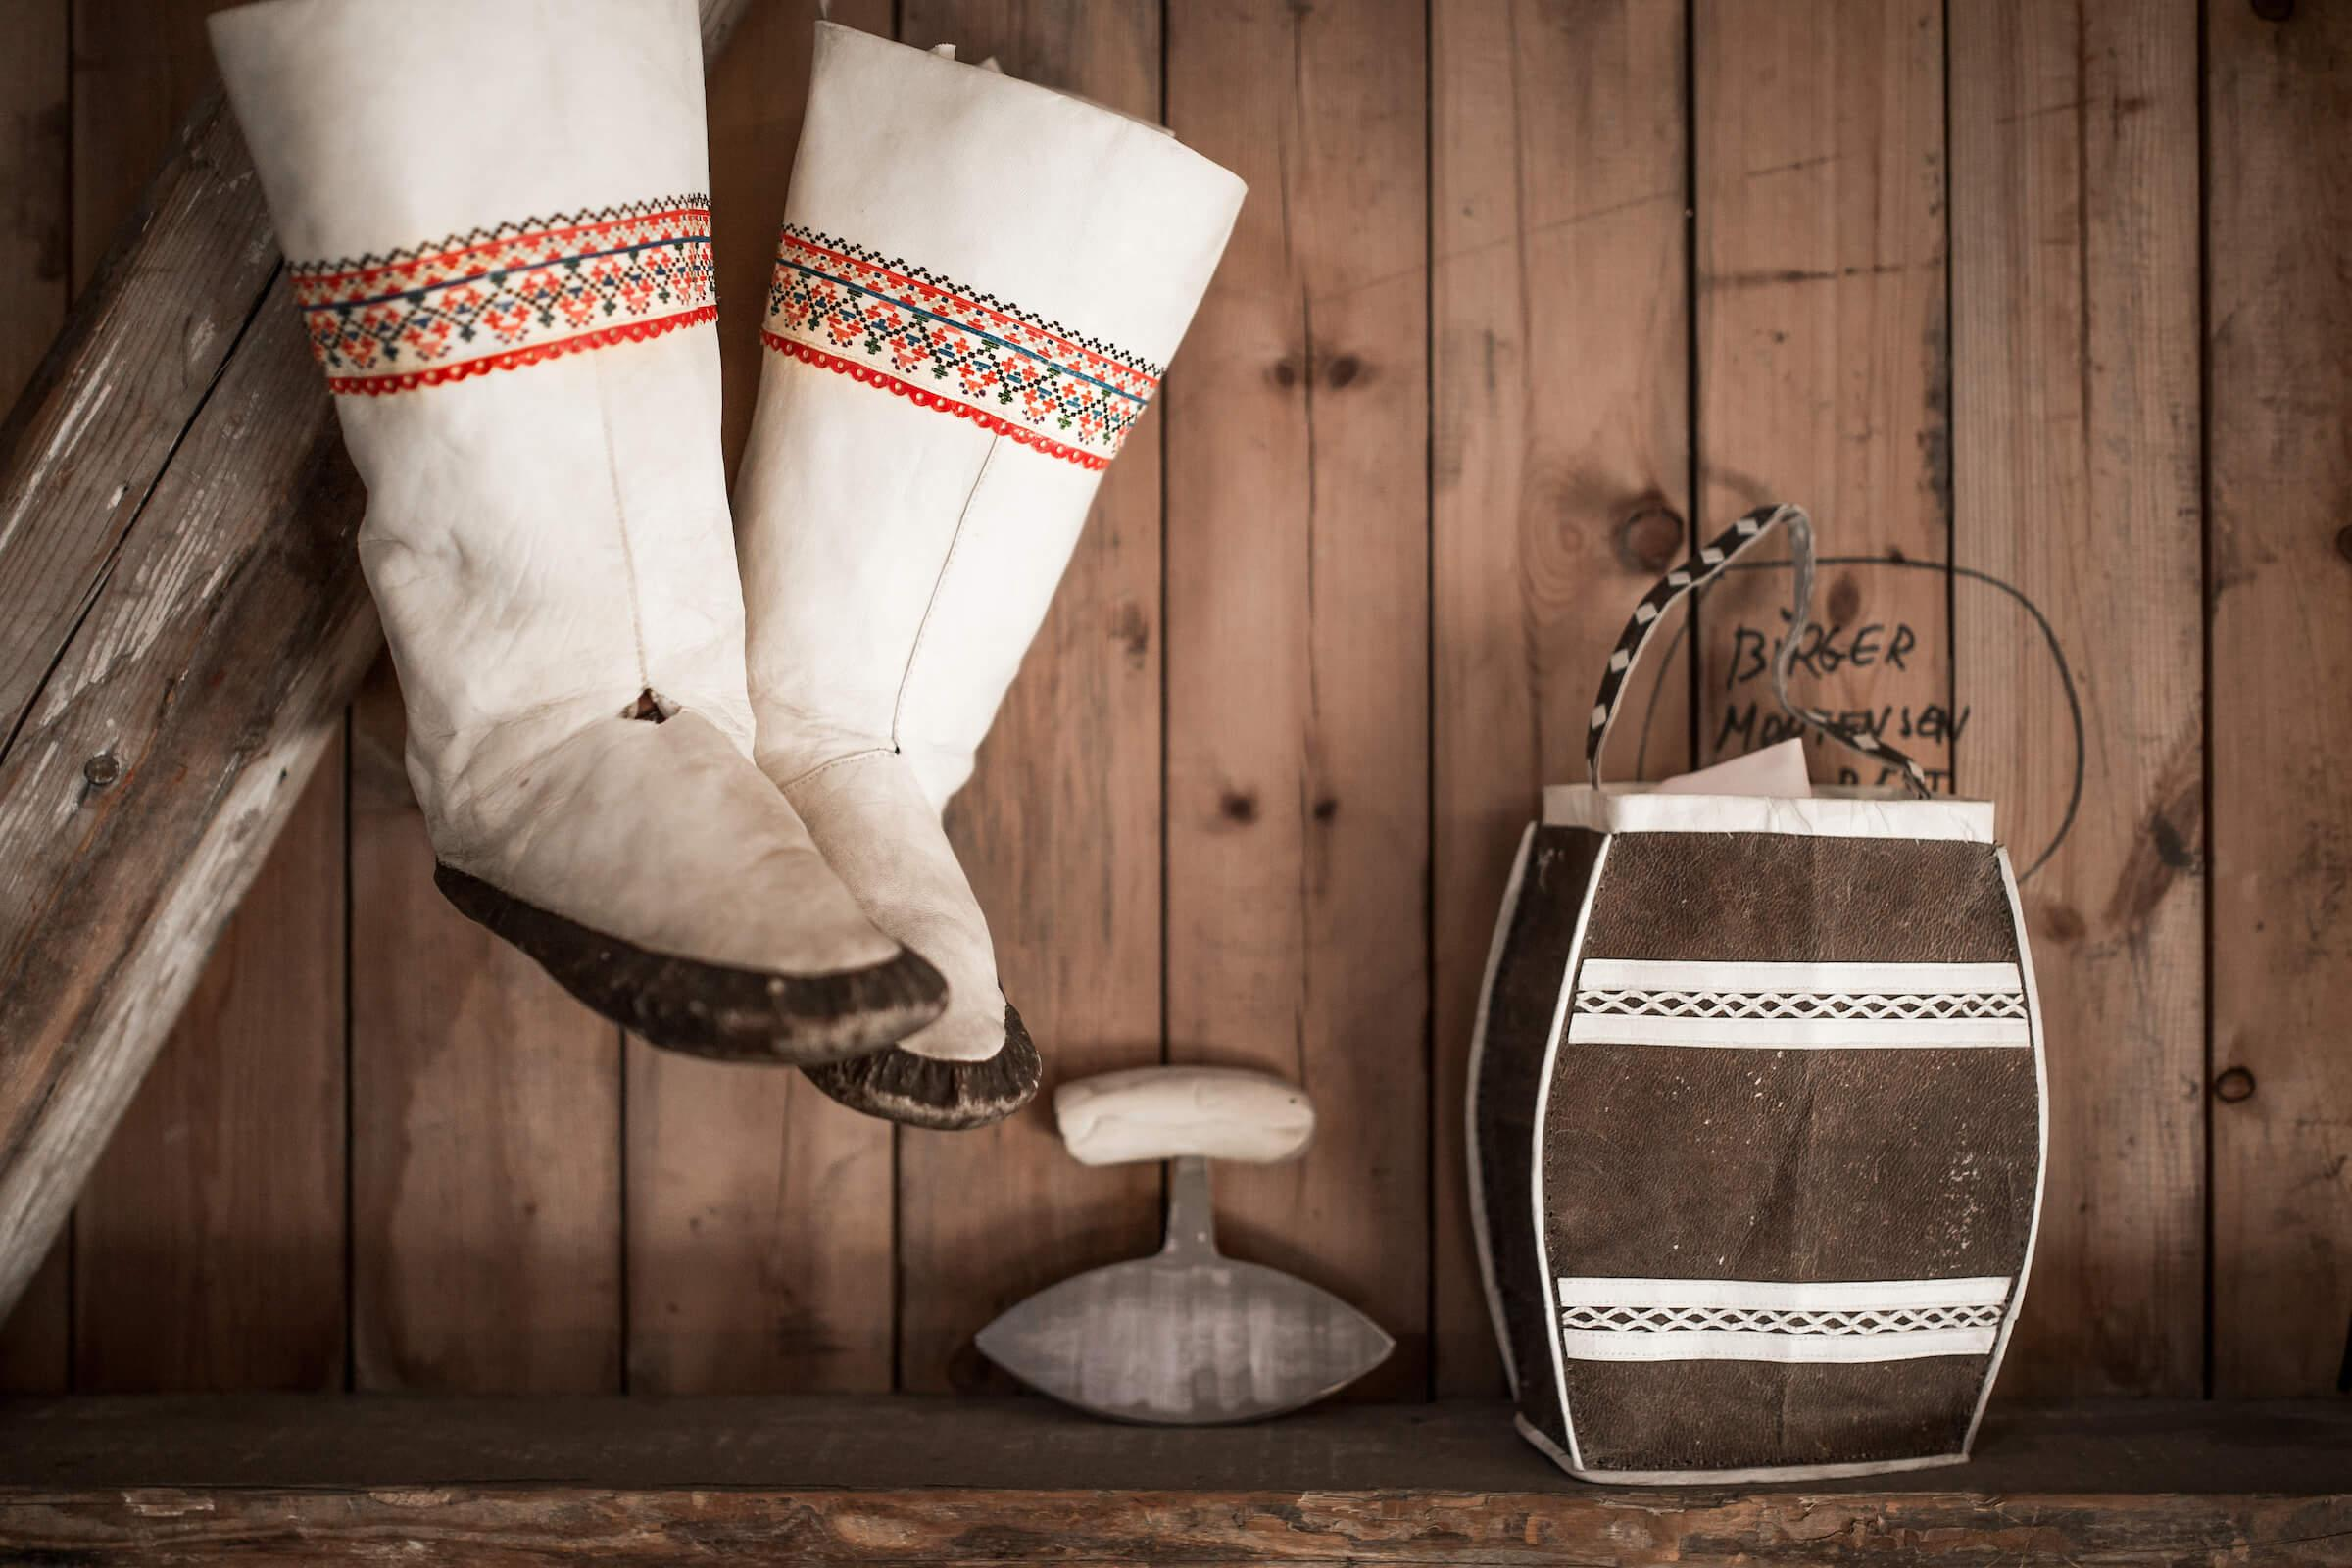 Kamiks and souvenirs at the Hotel Narsaq shop on the old harbour in Narsaq in South Greenland. Photo by Mads Pihl.